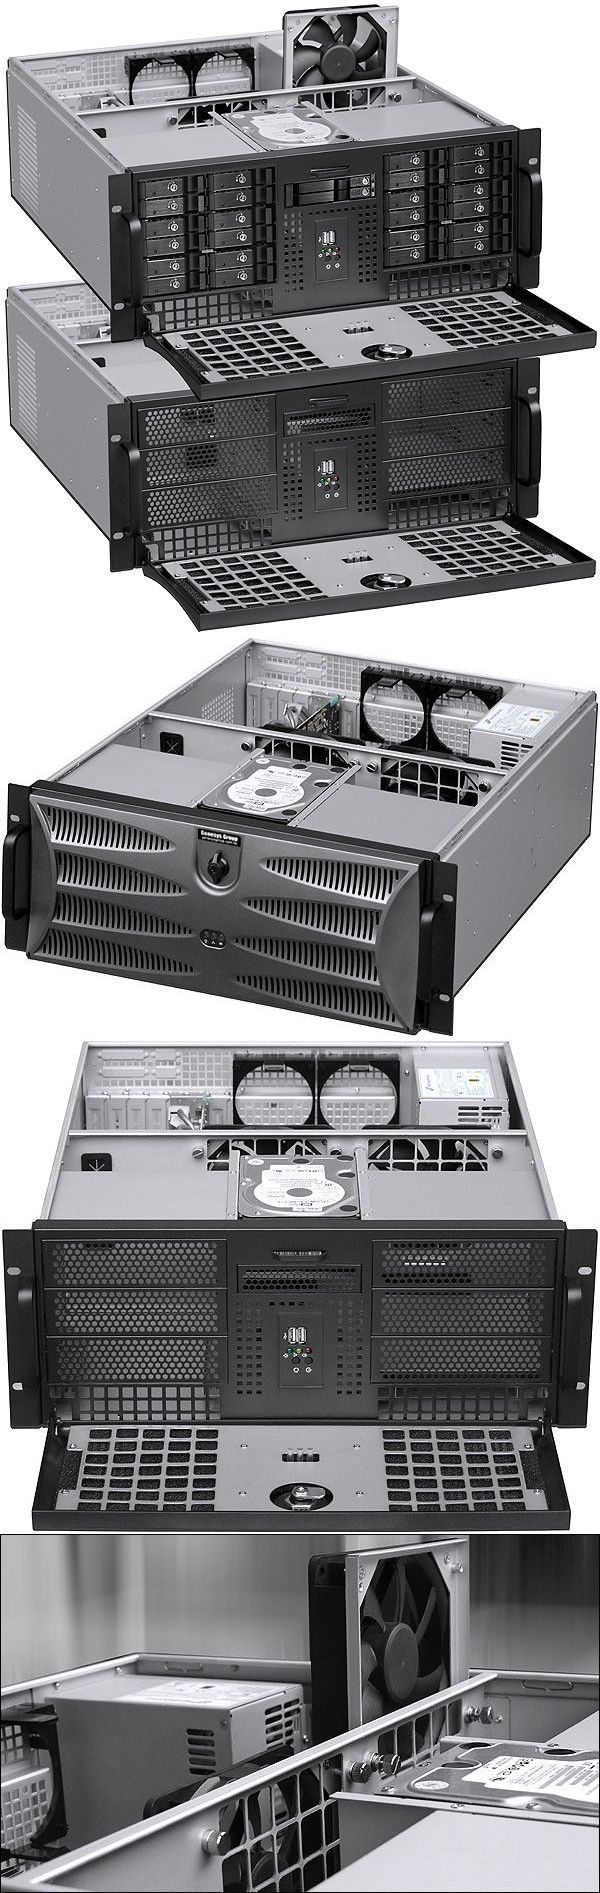 Pin On Rackmount Cases And Chassis 64061